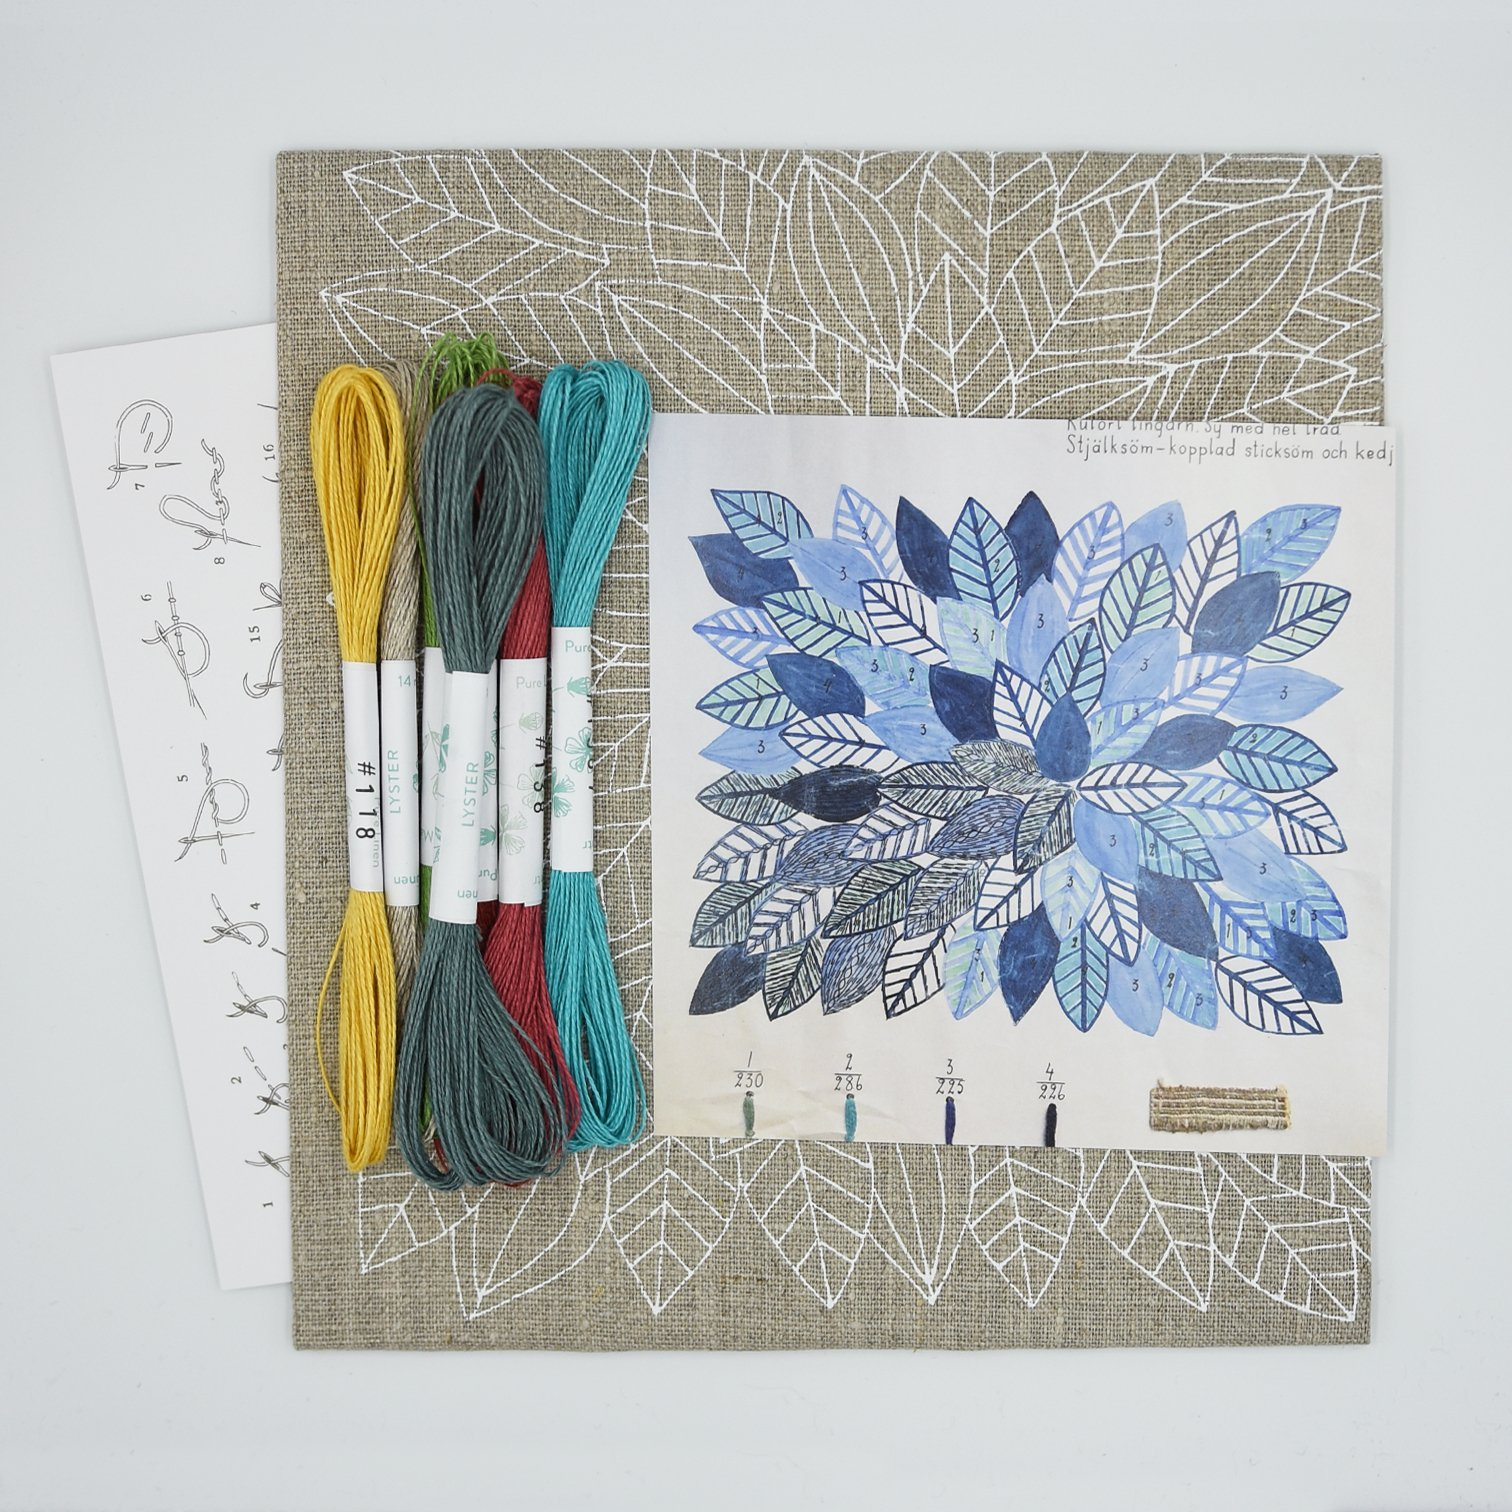 Linladan - Leaves 6193 - Swedish Embroidery Kit 36